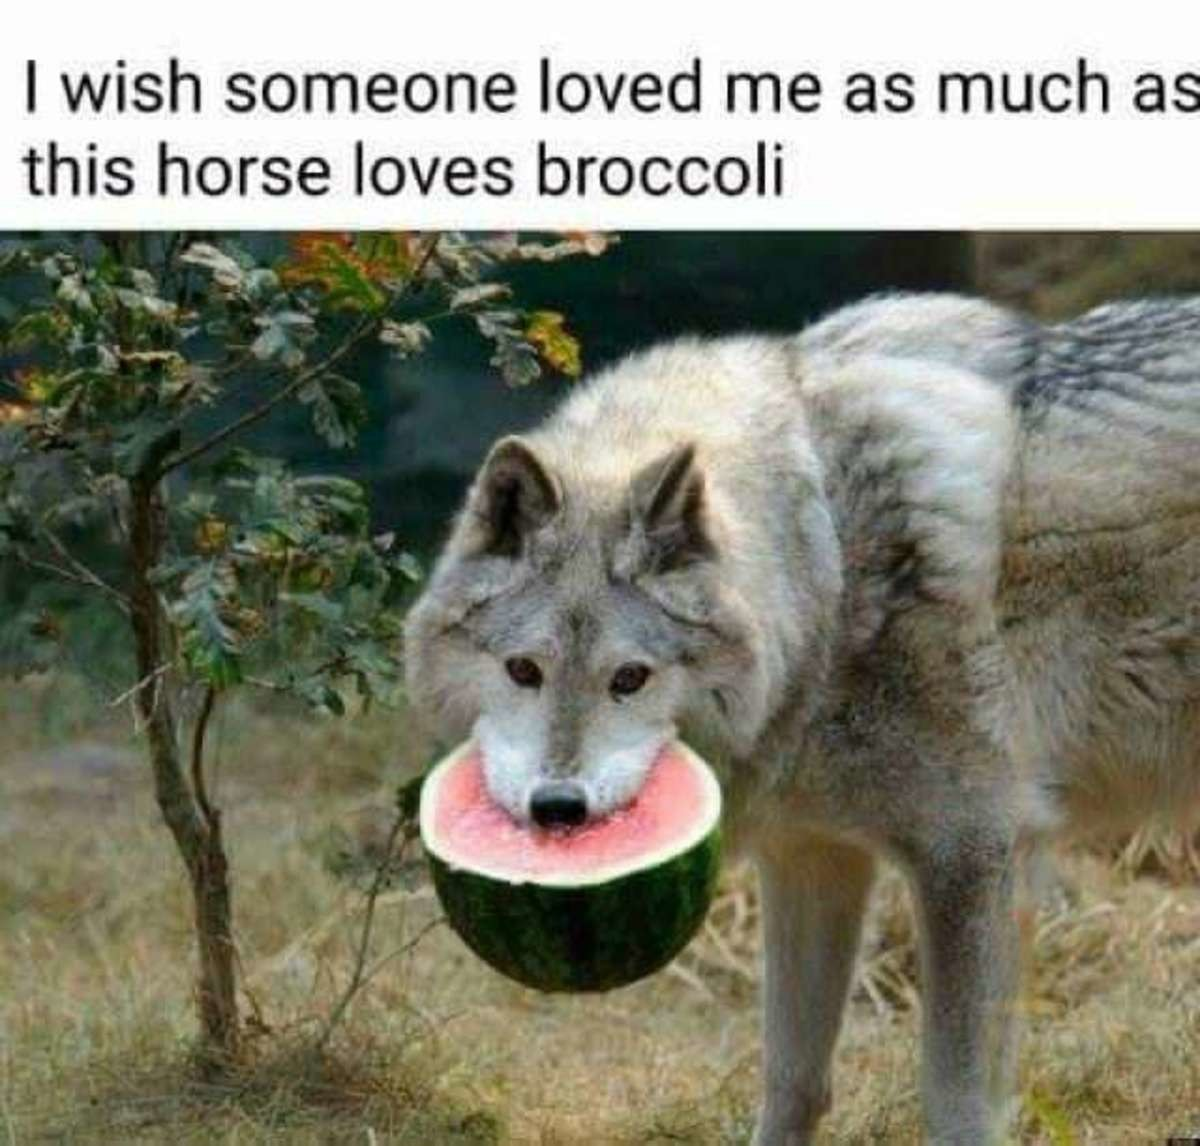 unique brainy yellow Panther. .. That's a wolf eating a watermelon Did I do the joke right?